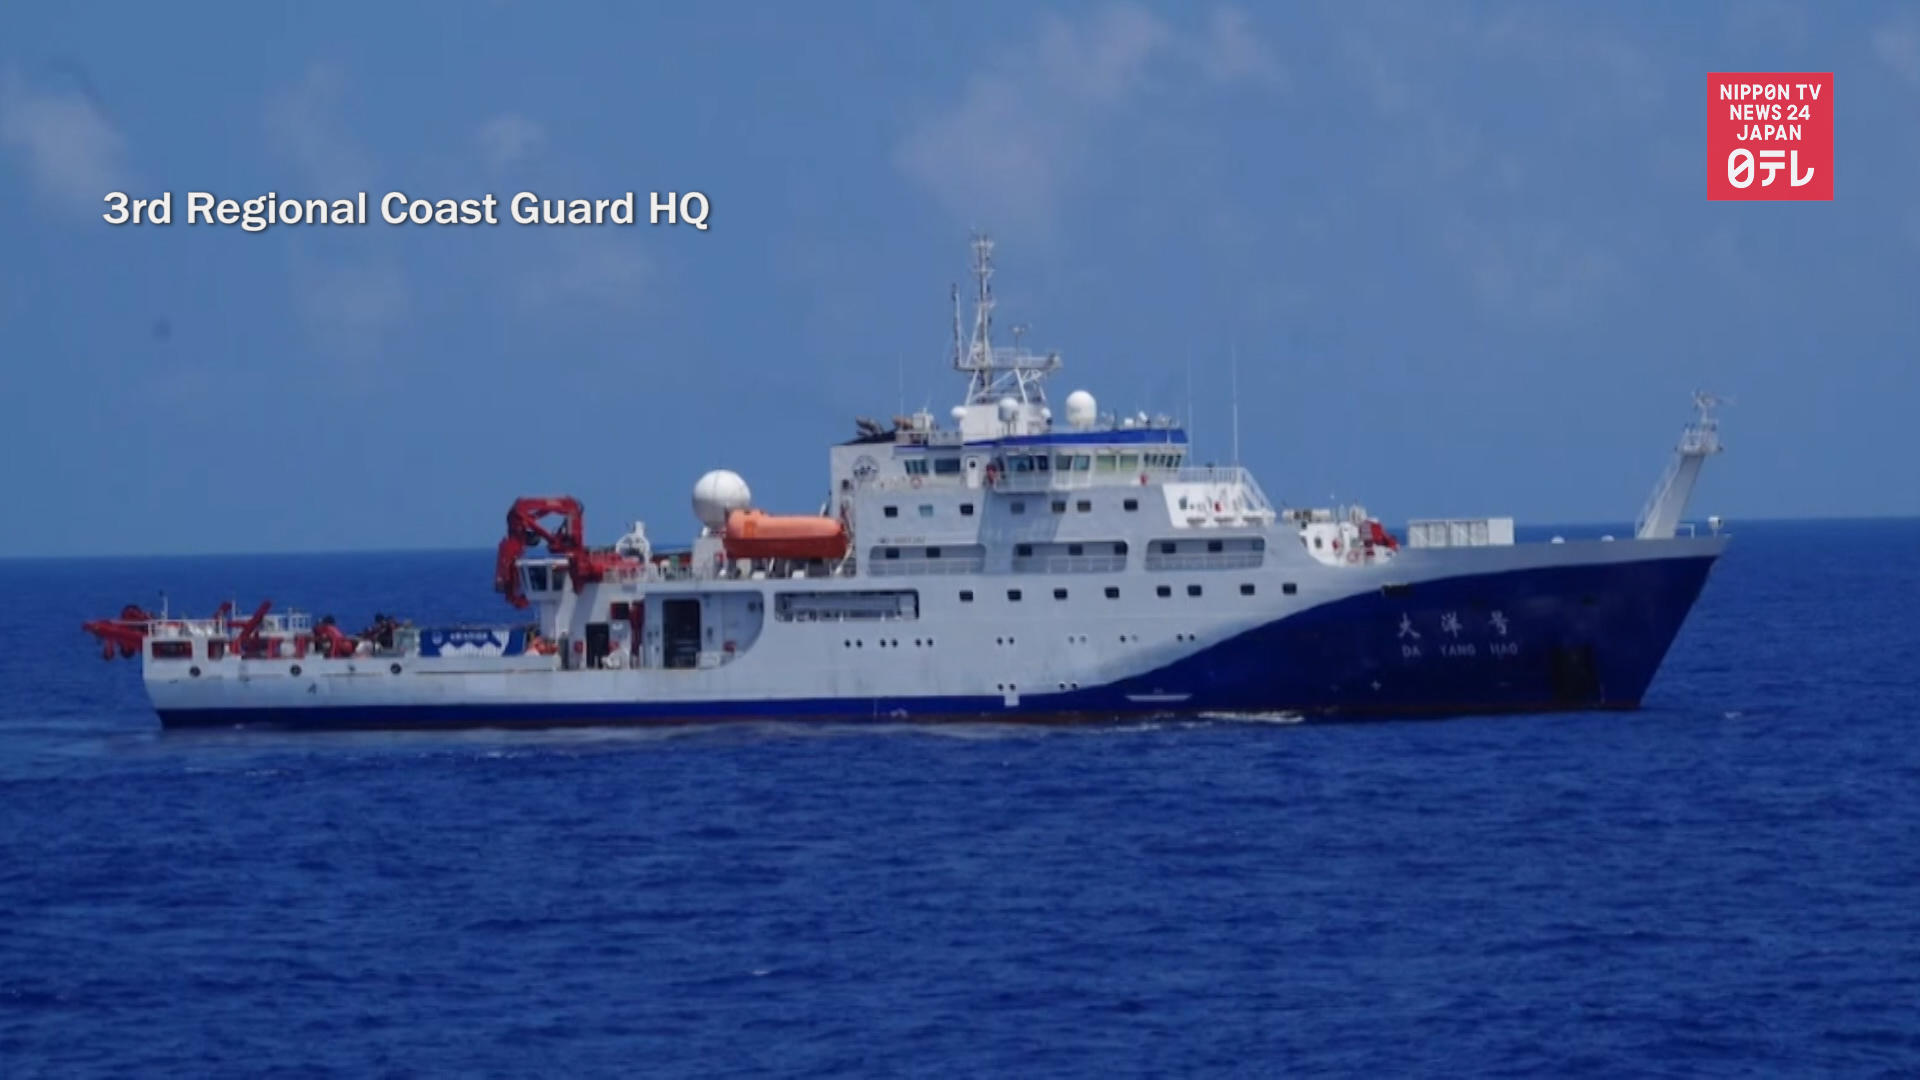 Chinese ship surveys Japan's EEZ for 10 days